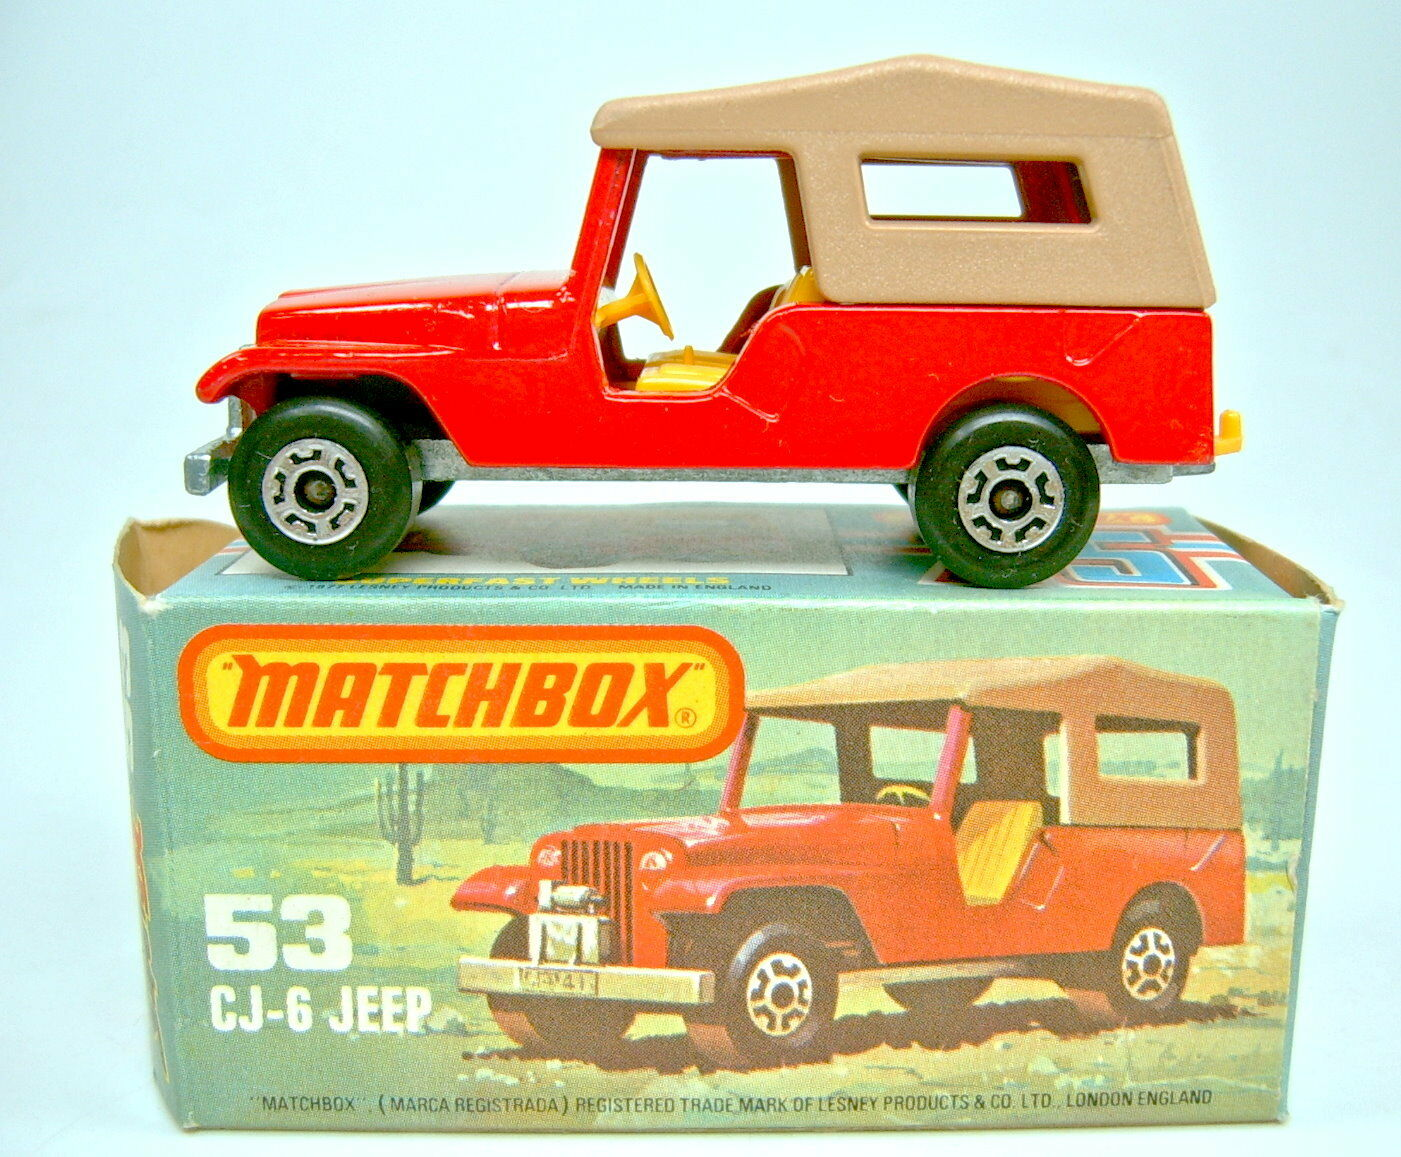 Matchbox SF Nr. 53C Jeep CJ-6 rot & braun top in Box  | Spezielle Funktion